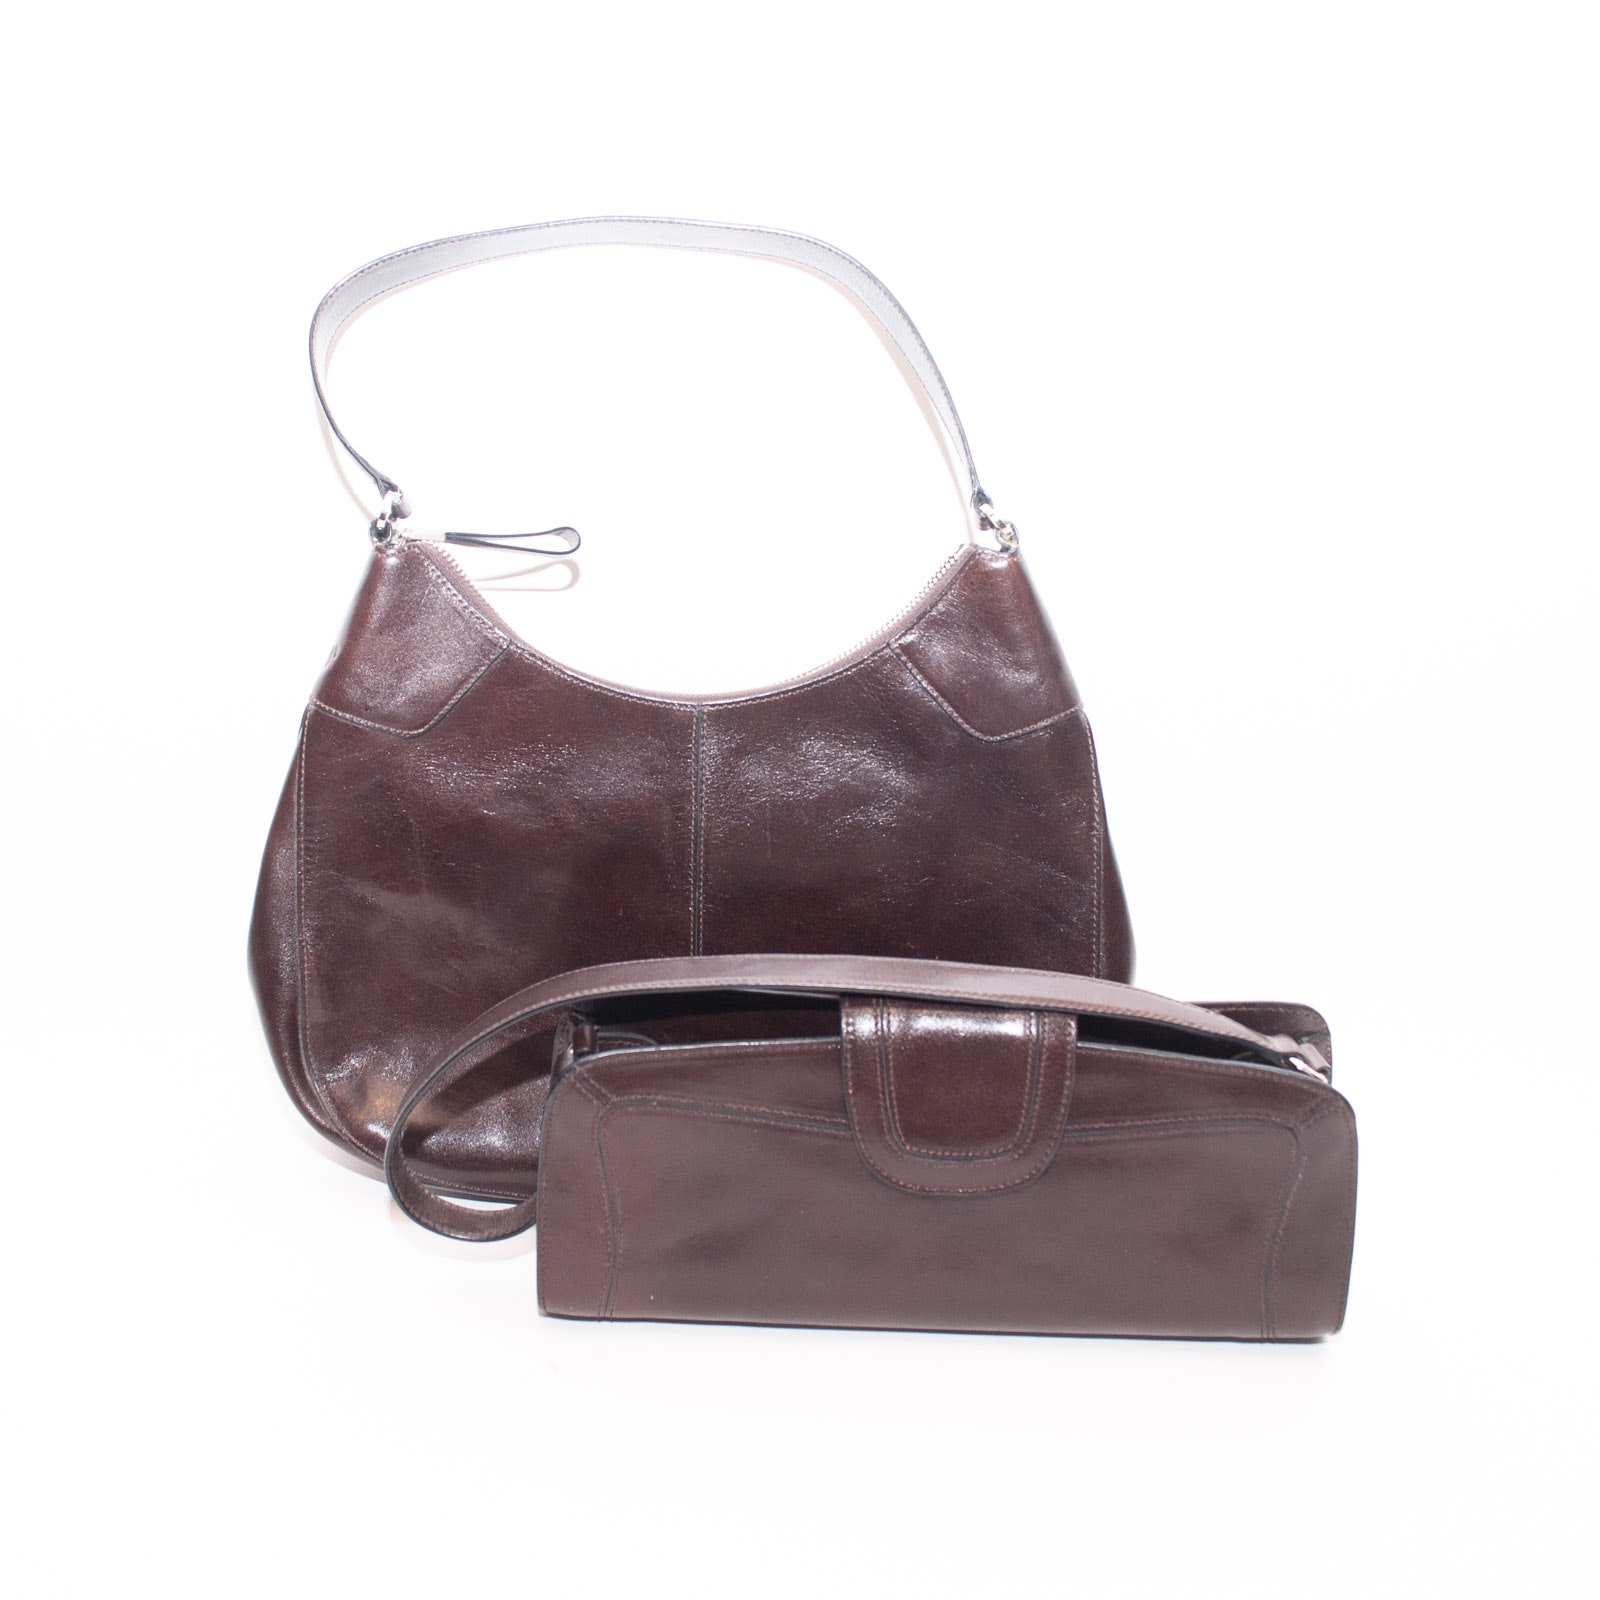 Monsac Brown Leather Handbags